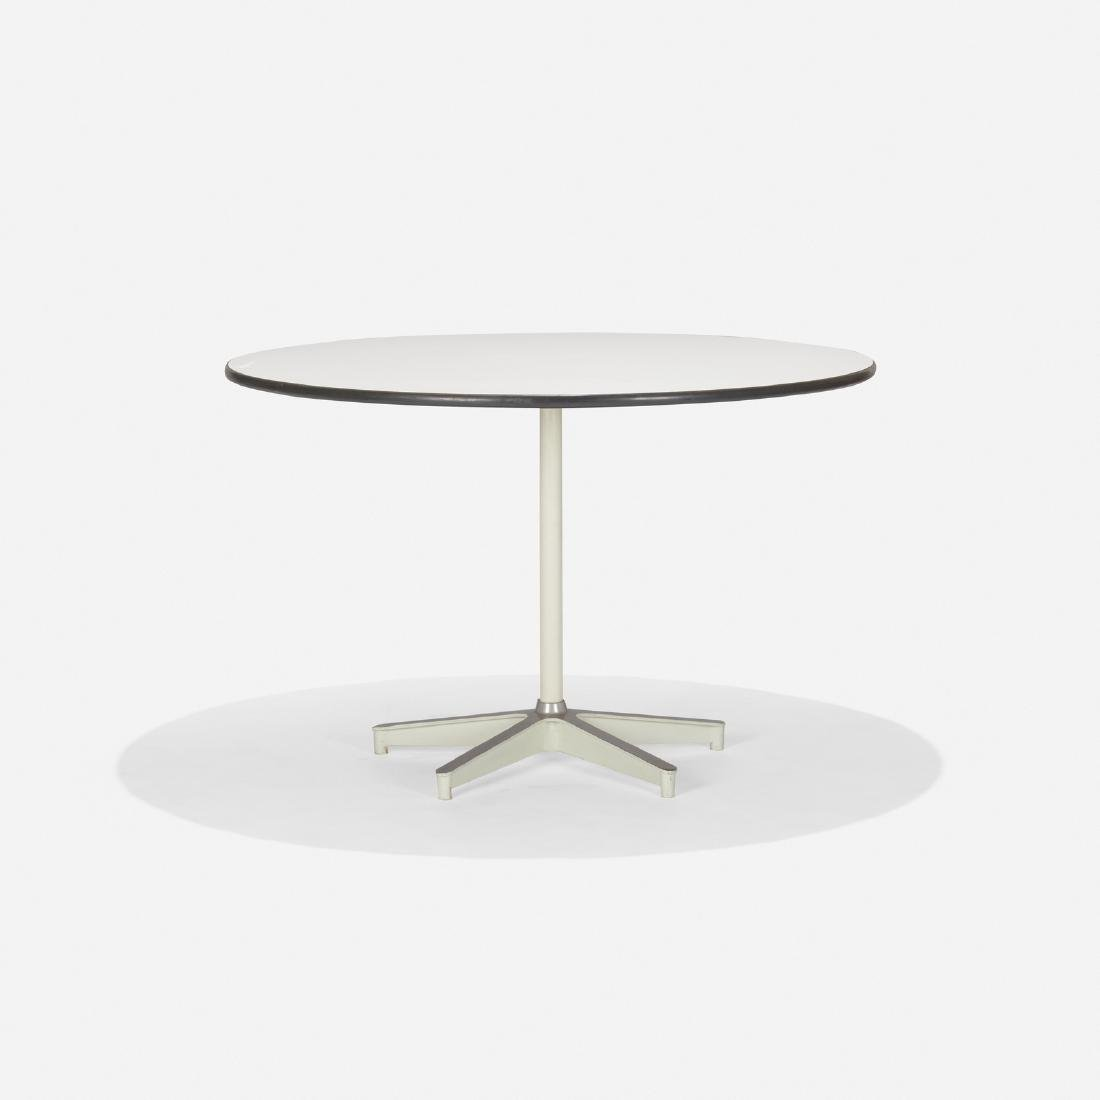 Charles Eames, 650 dining table